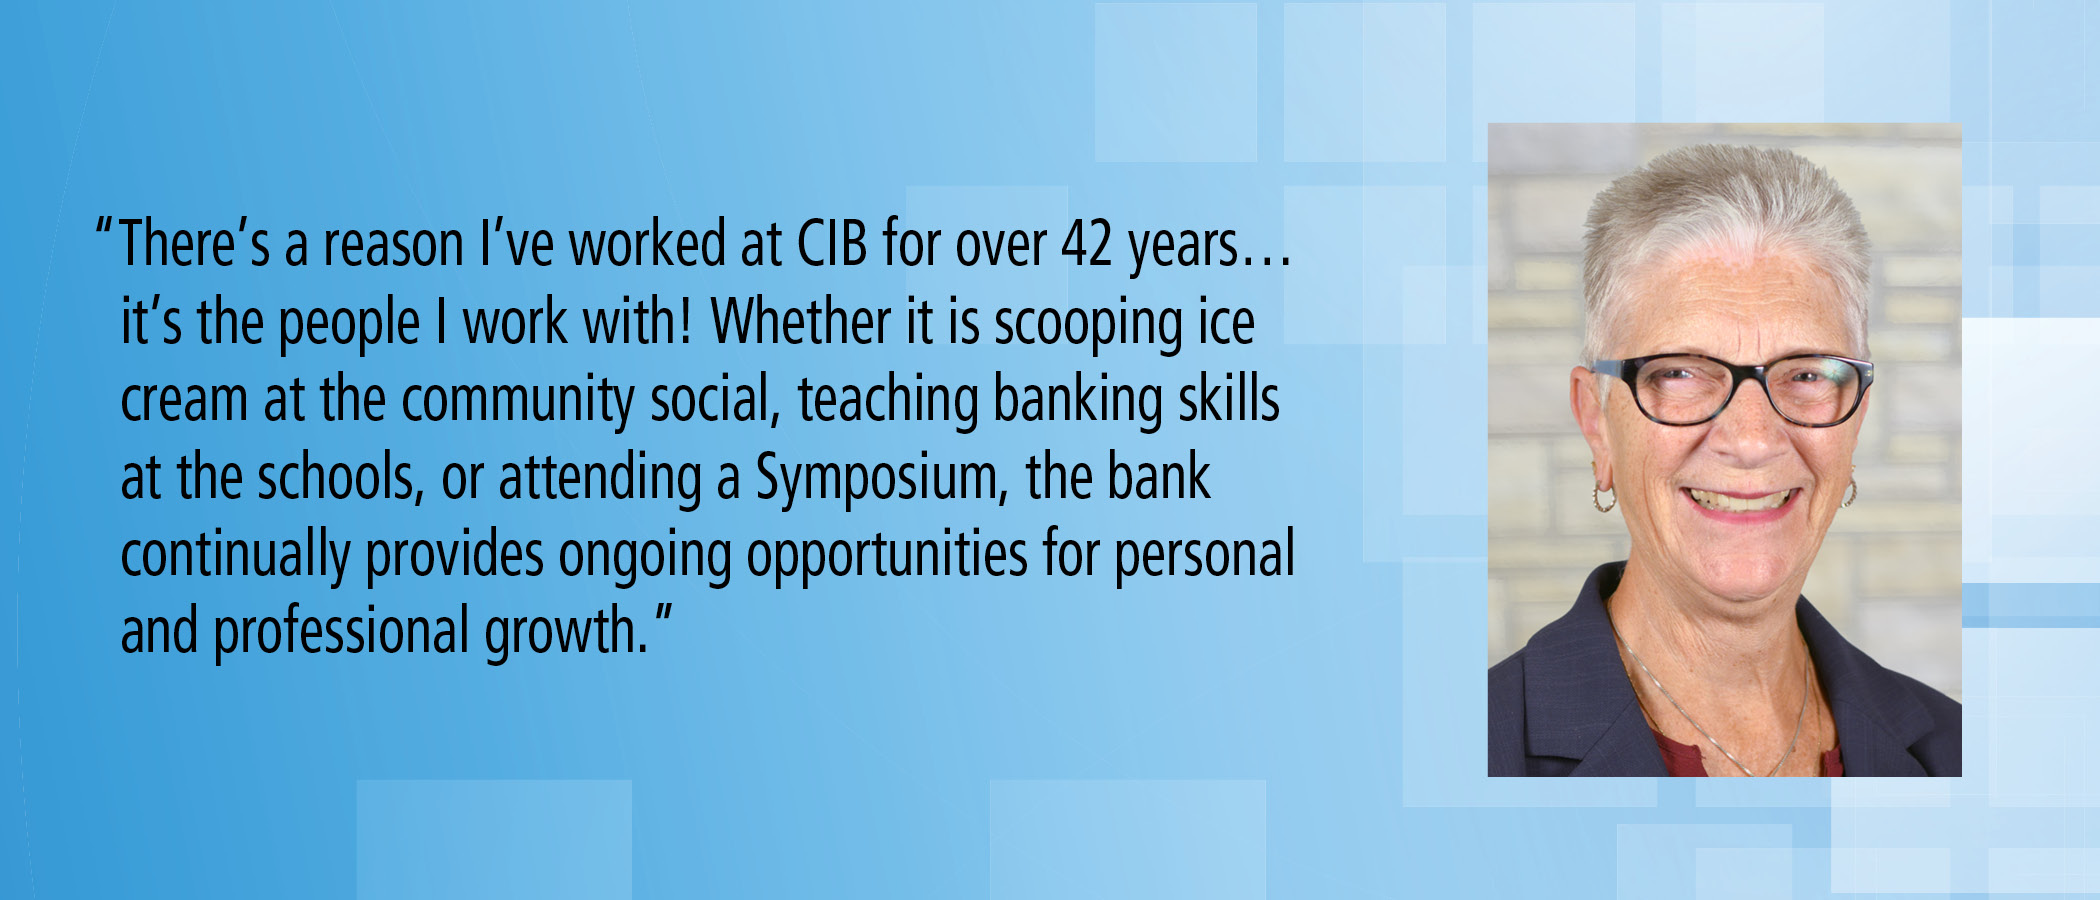 There's a reason I've worked at CIB for over 42 years, It's the people I work with. Whether it is scooping ice cream at the community social, teaching banking skills at the schools, or attending a Symposium, the bank continually provides ongoing opportunities for personal and professional growth.